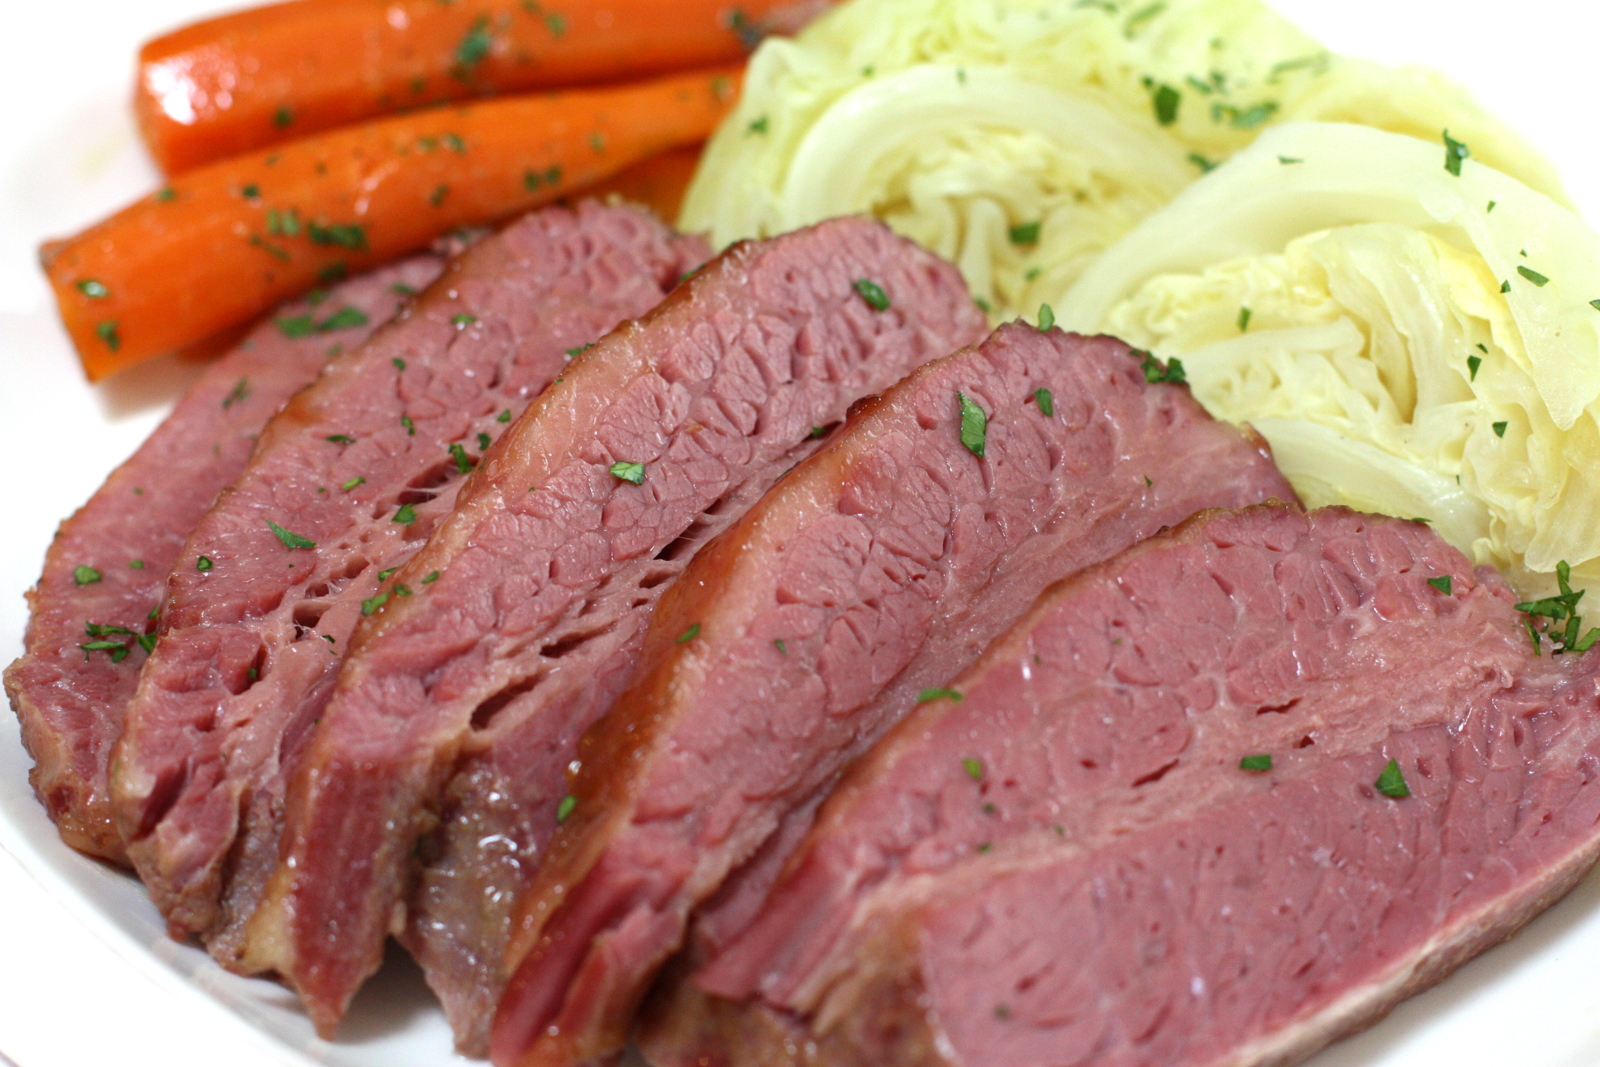 My Mama's Corned Beef and Cabbage | Wives with Knives